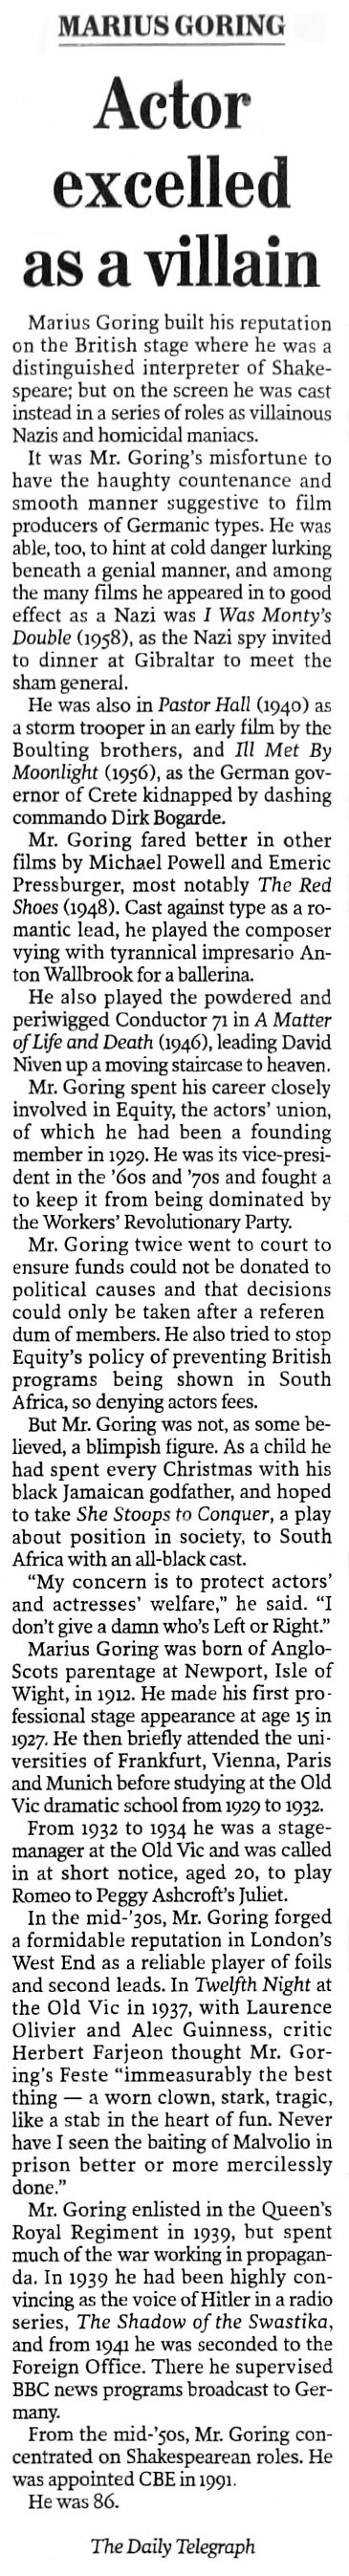 Marius Goring Obituary in The Daily Telegraph